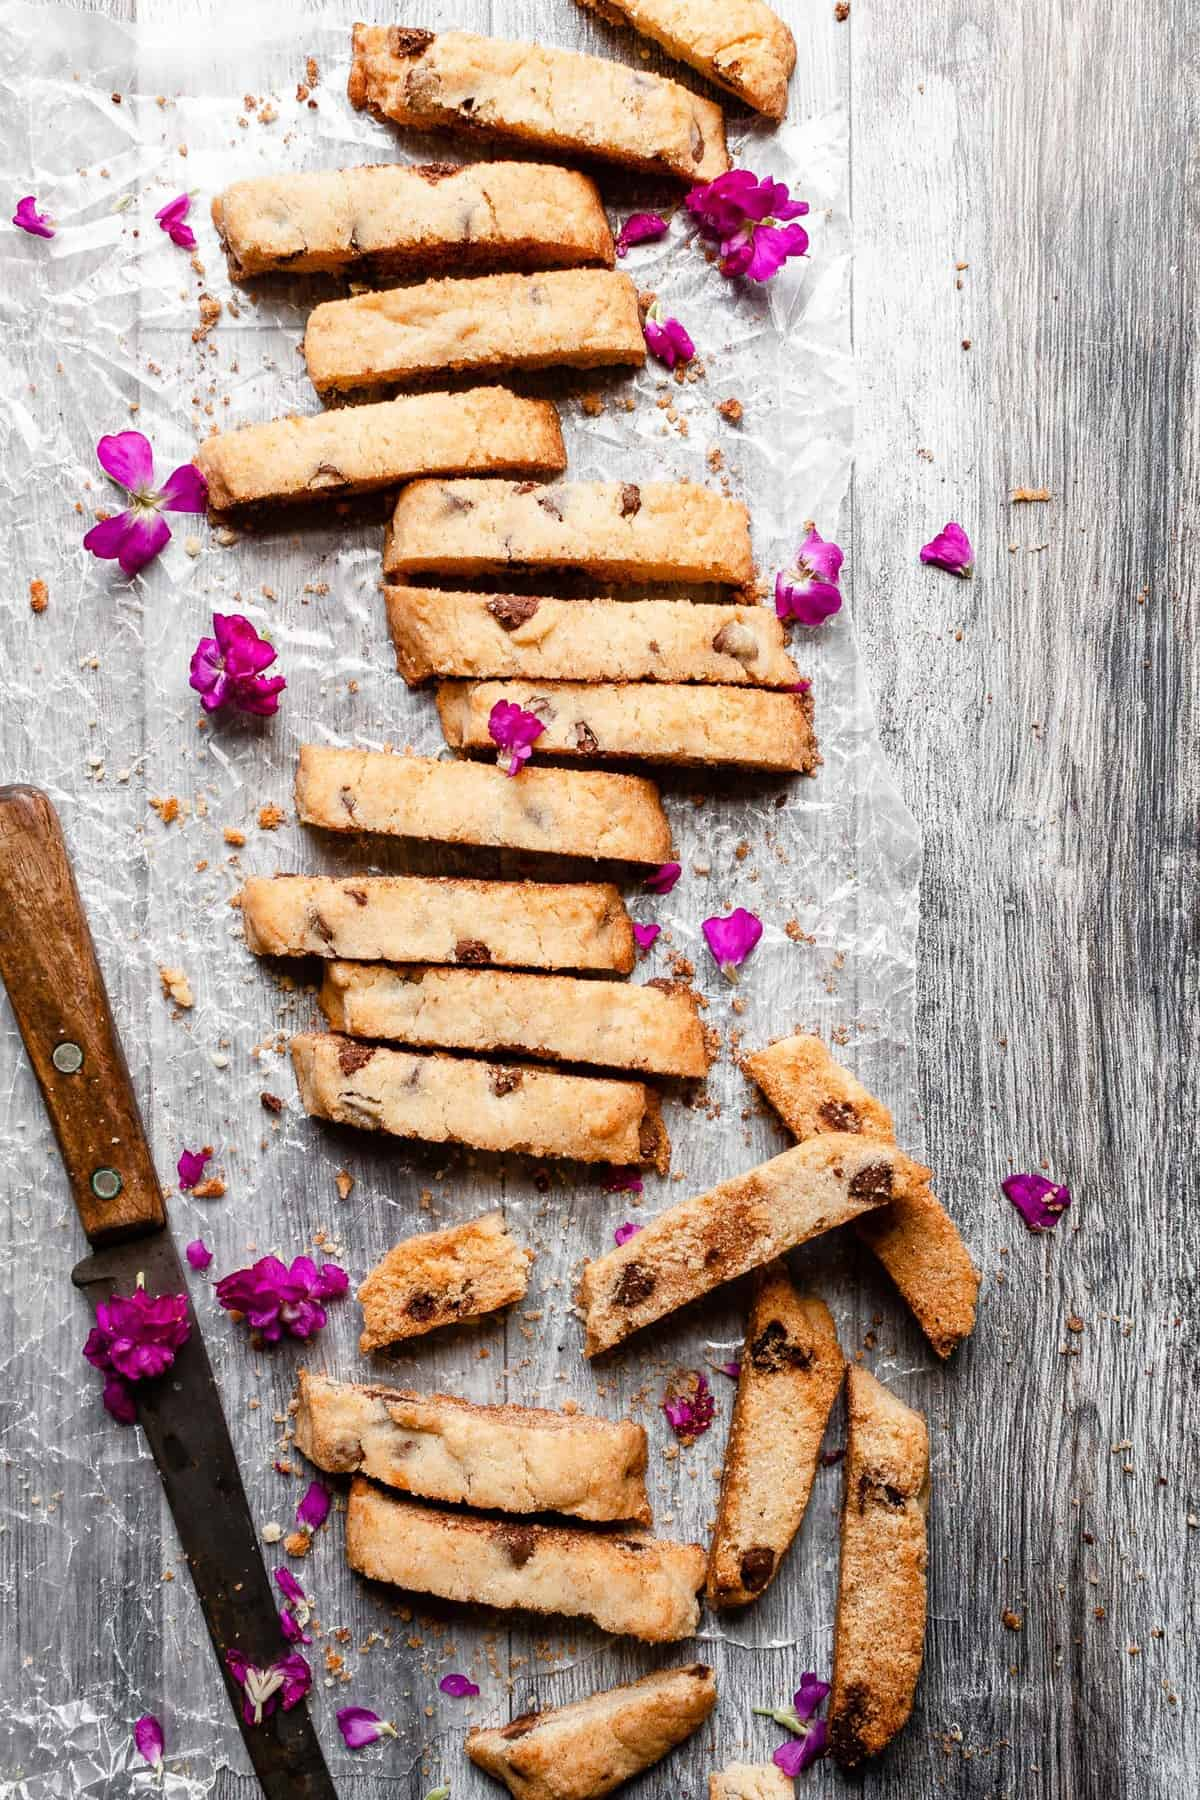 Almond or chocolate chips mandel bread recipe.